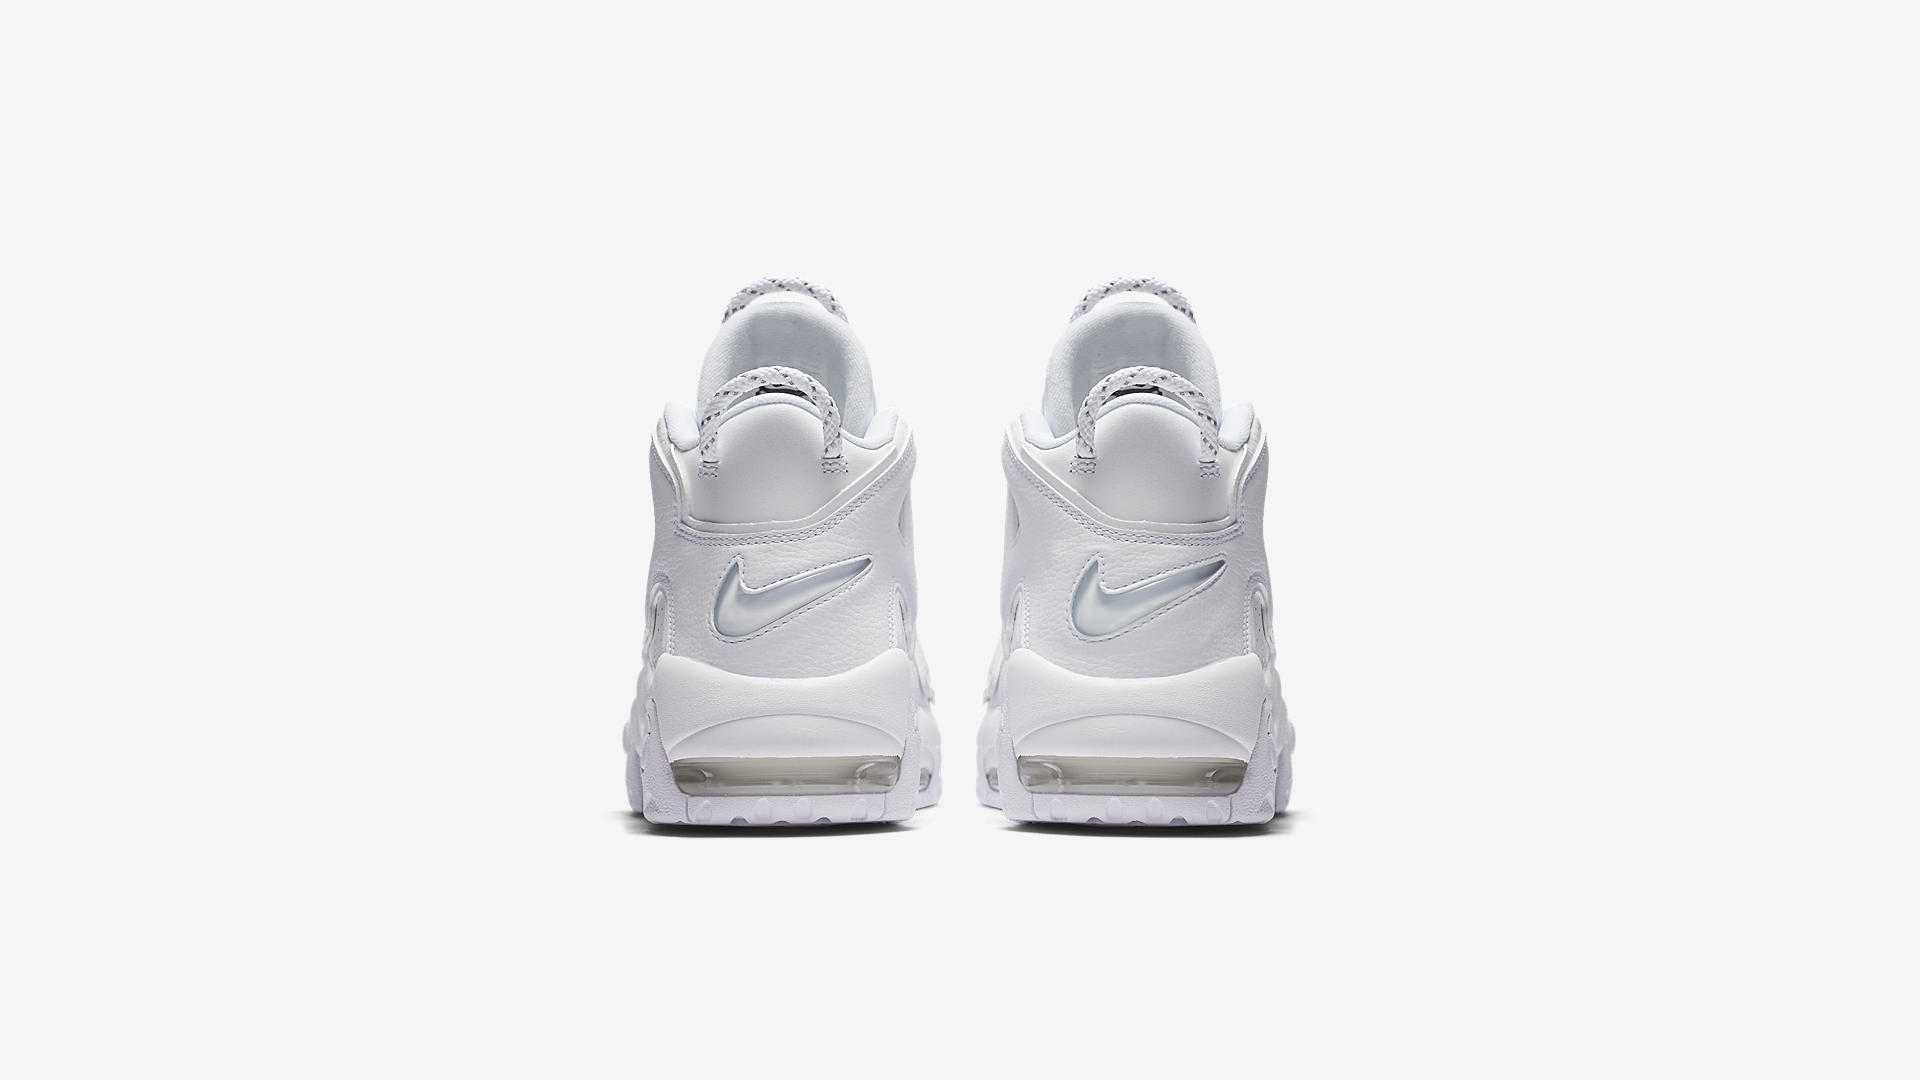 Nike Air More Uptempo Triple White 921948 100 2